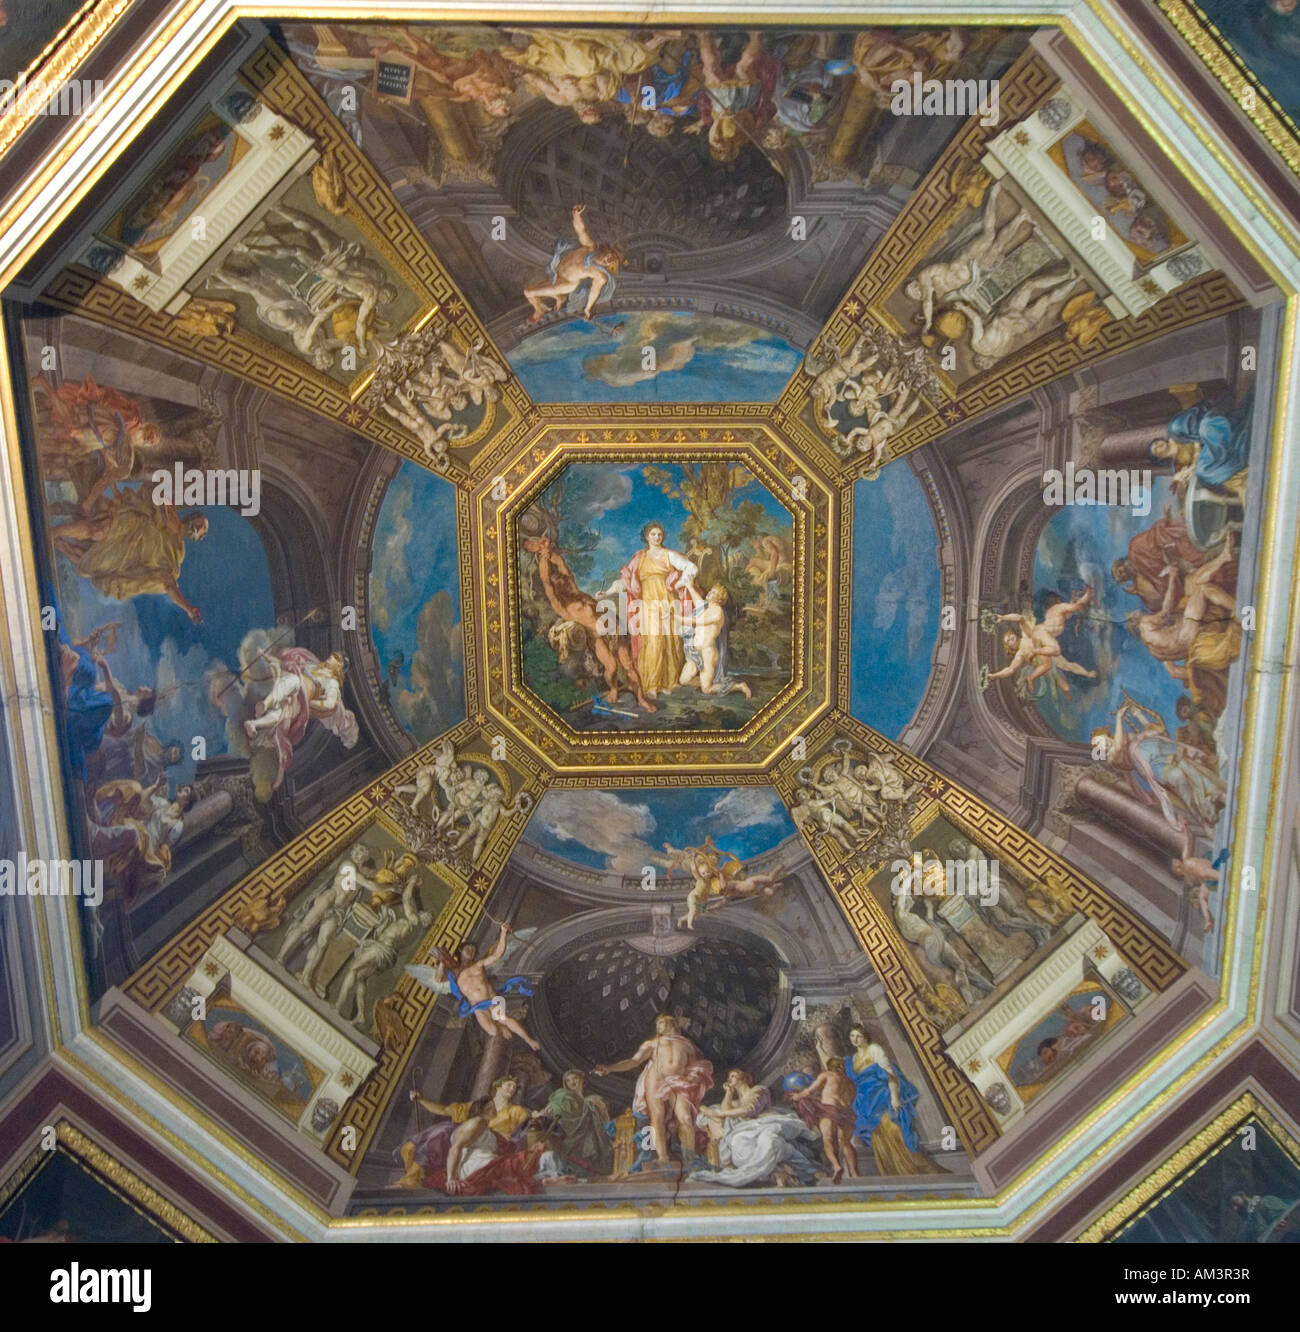 The ceiling of the Sala Delle Muse Room of the Muses Vatican Museum Rome Italy - Stock Image